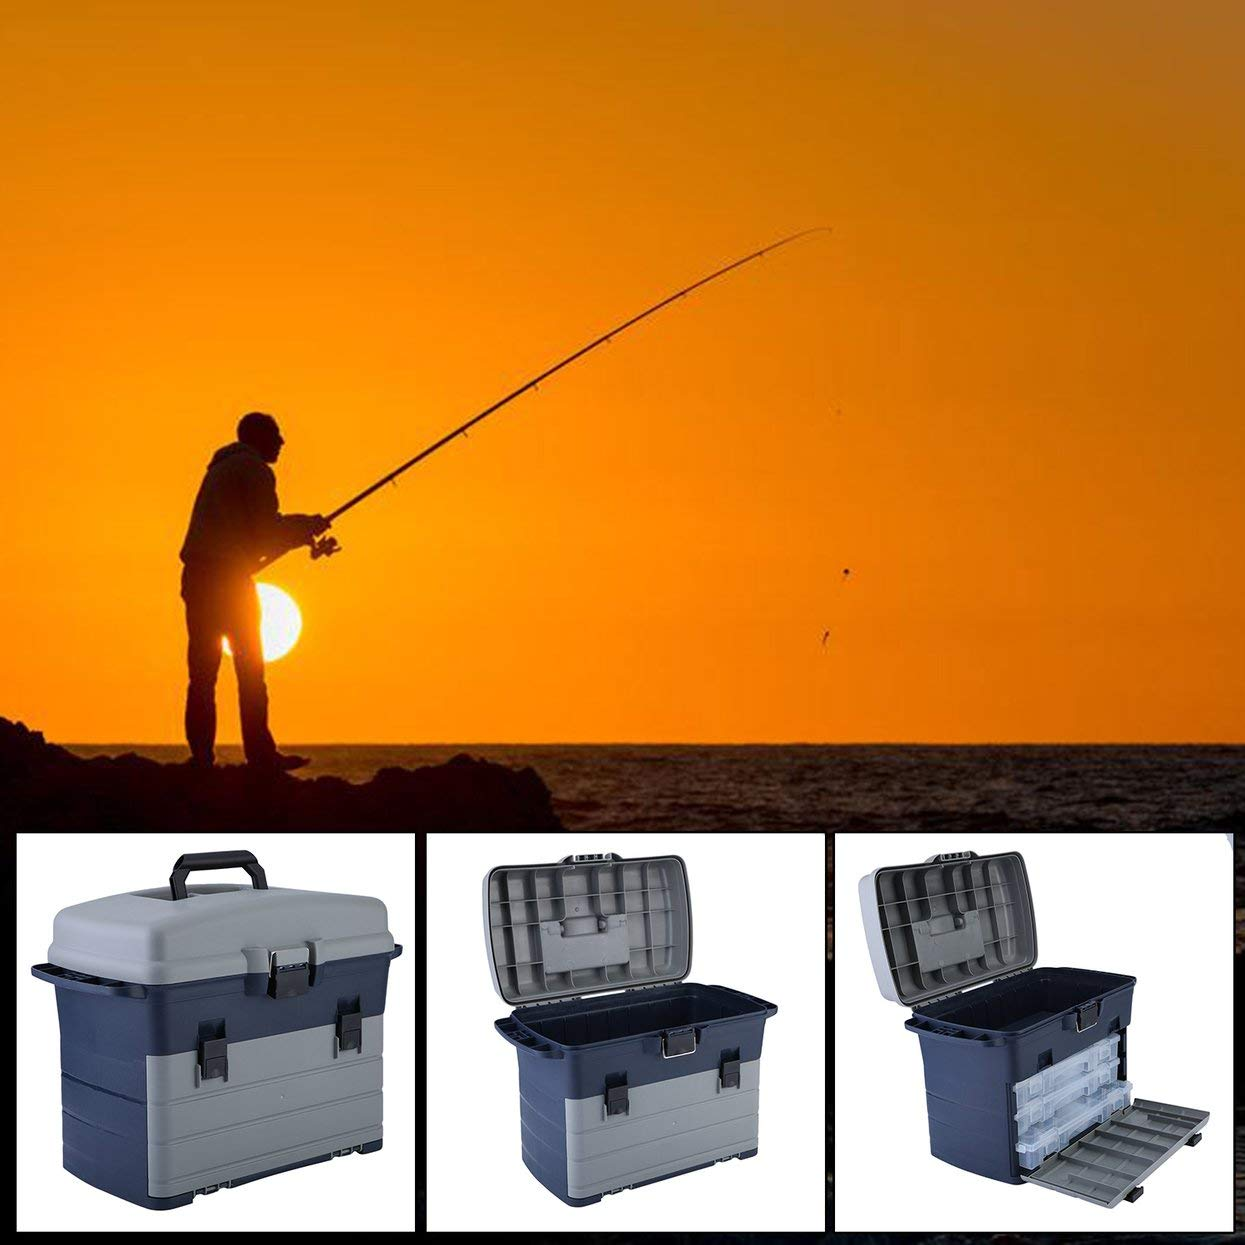 Heavy Duty Fishing Tackle Box 3 Layers Removable Trays Storage Organizer Case Tool Fishing Accessories Lures Bait Storage Box by ToGames (Image #5)